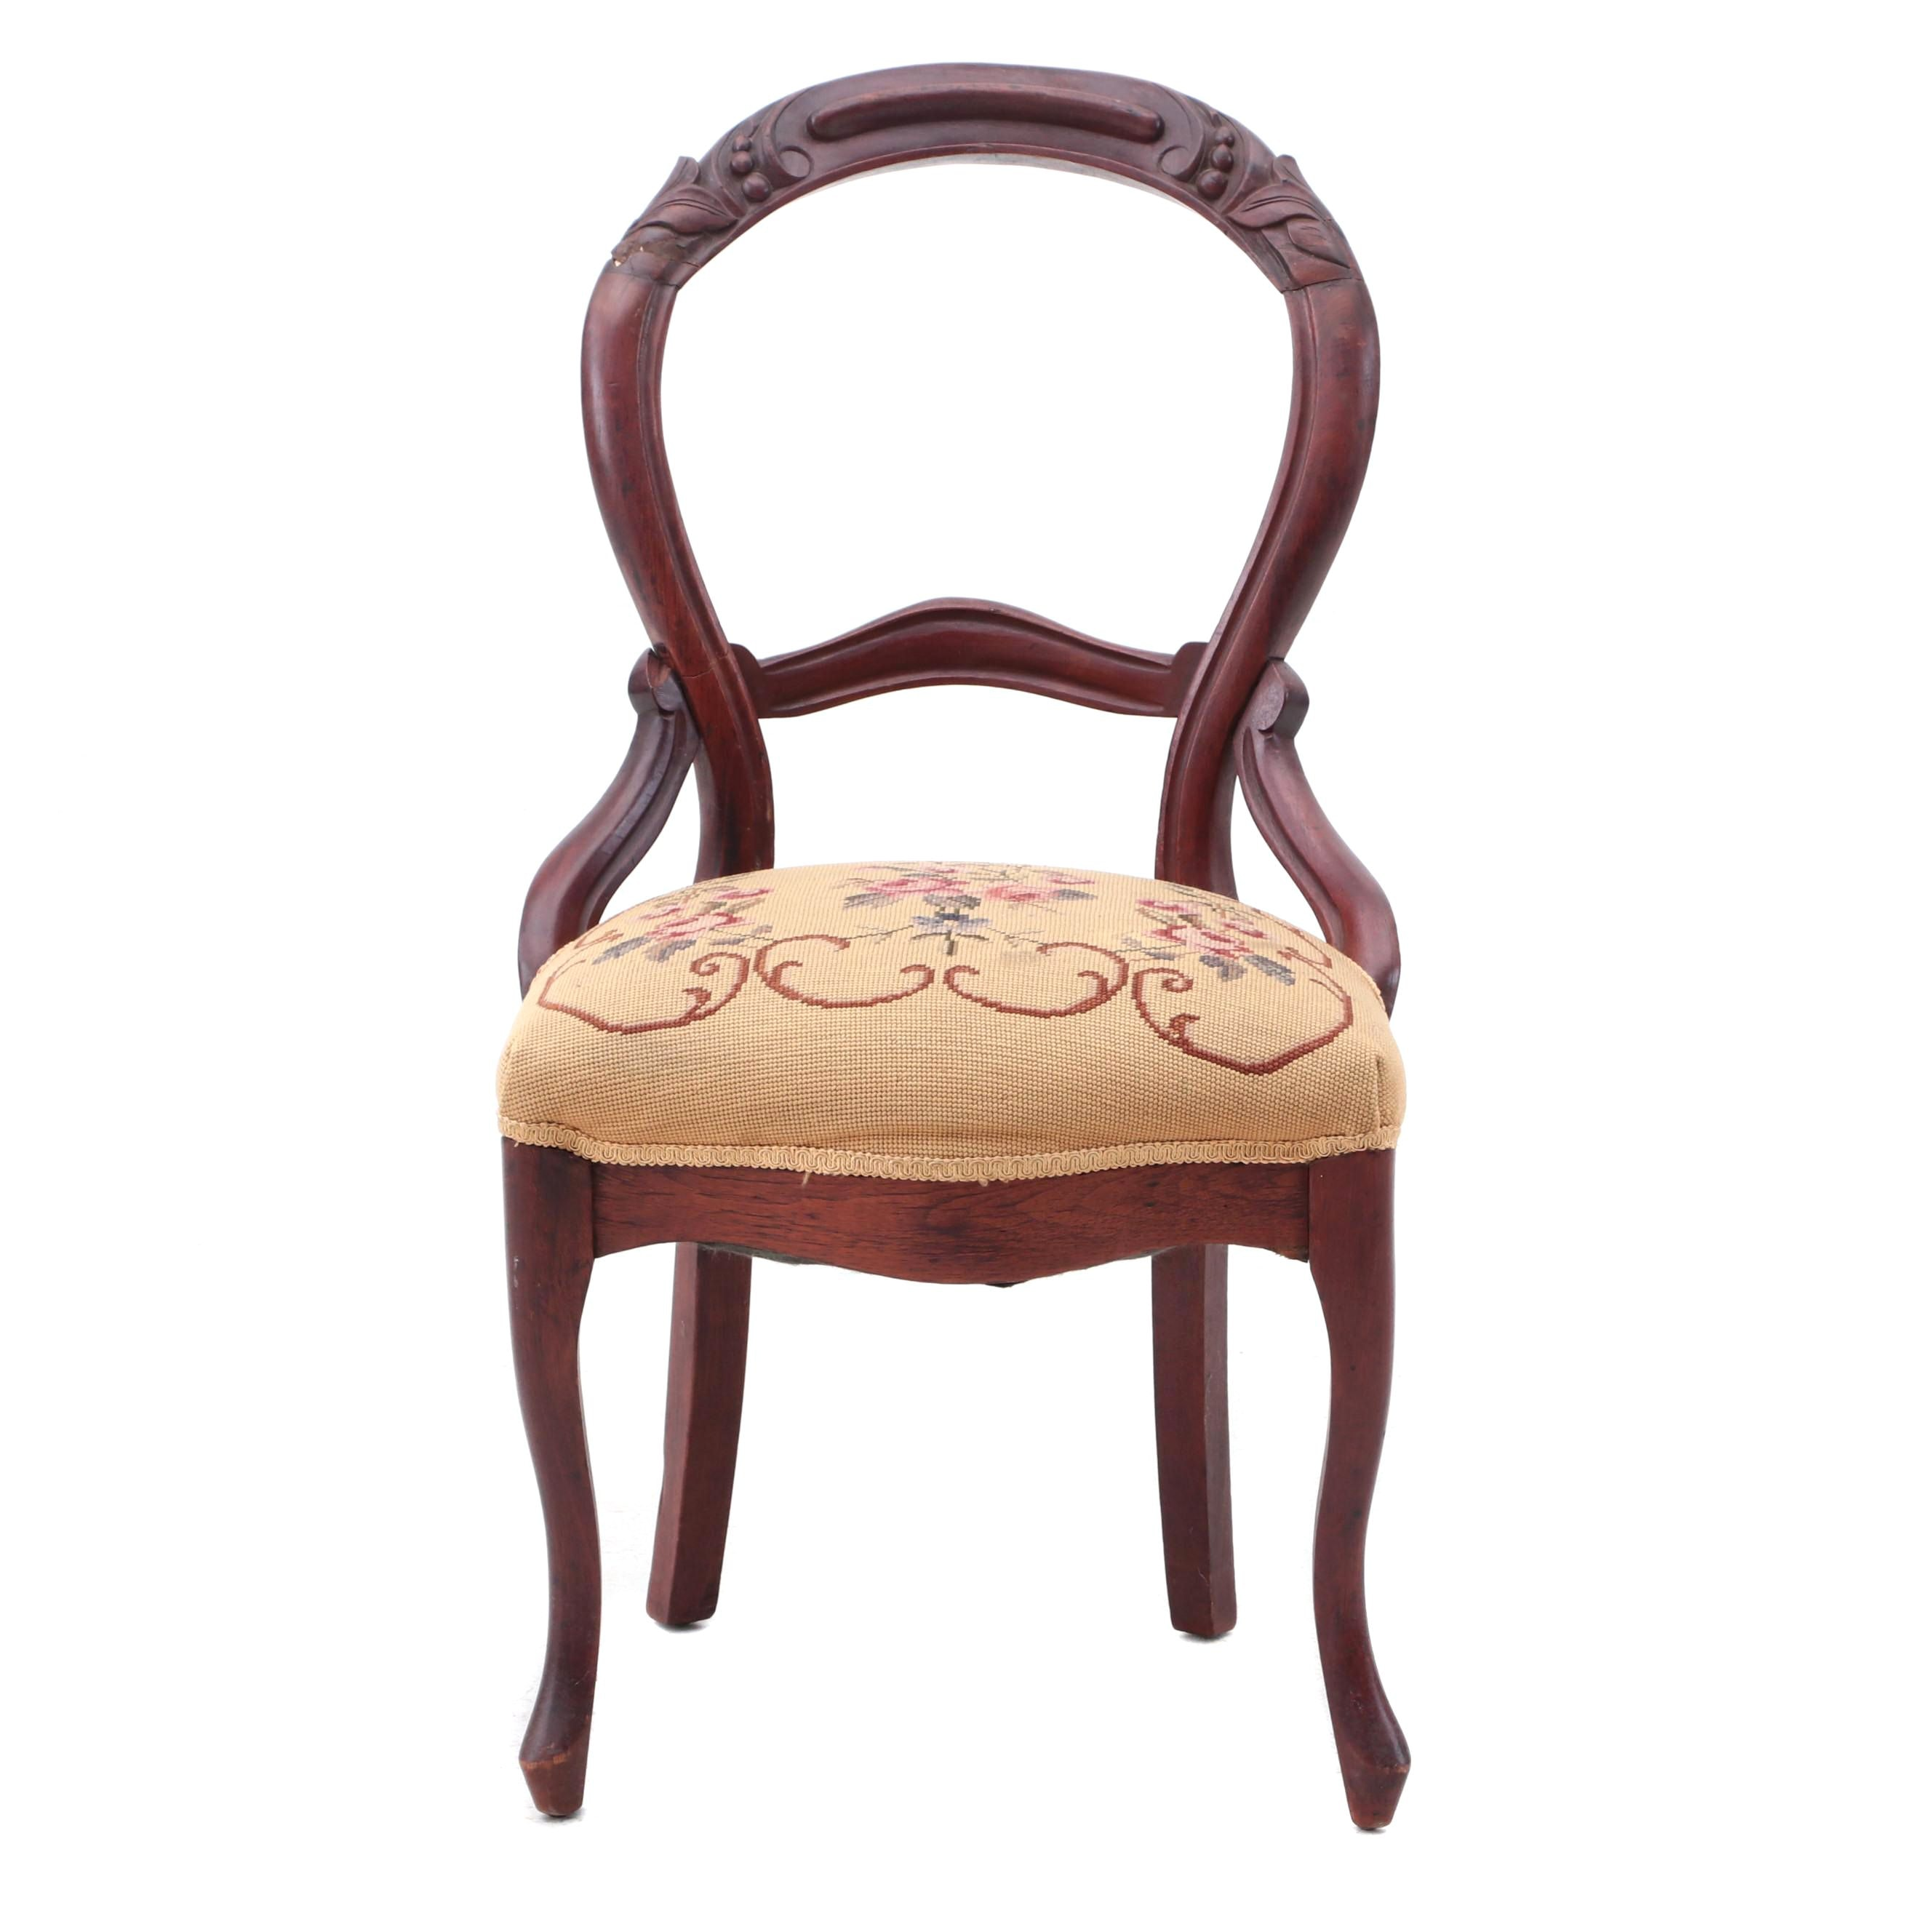 Victorian Side Chair with Needlepoint Upholstery